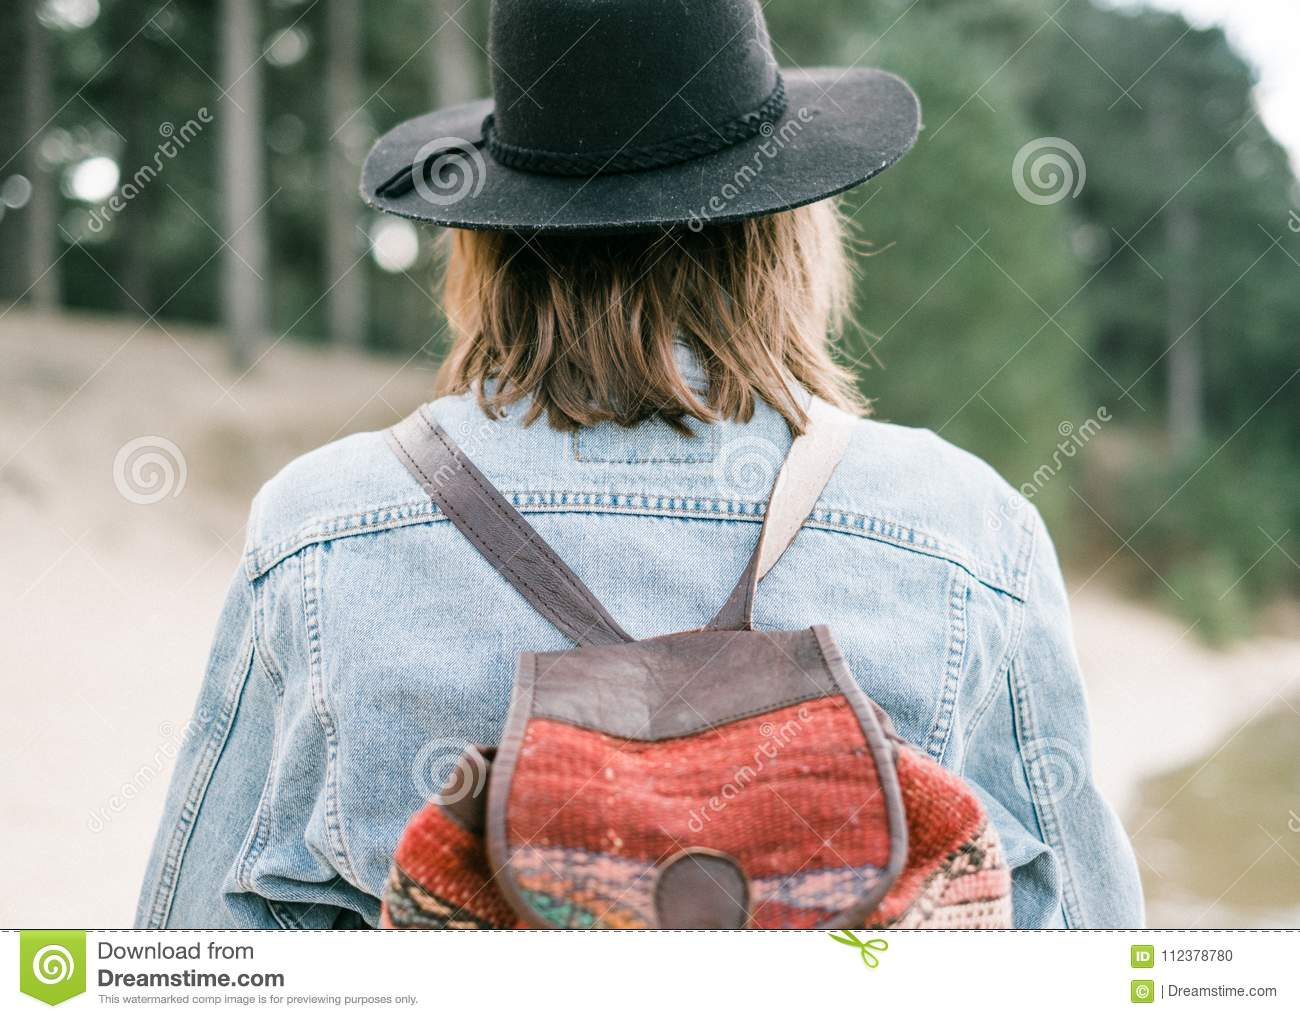 Close Up Photo Of A Denim Jacket On A Young Woman Stock Photo